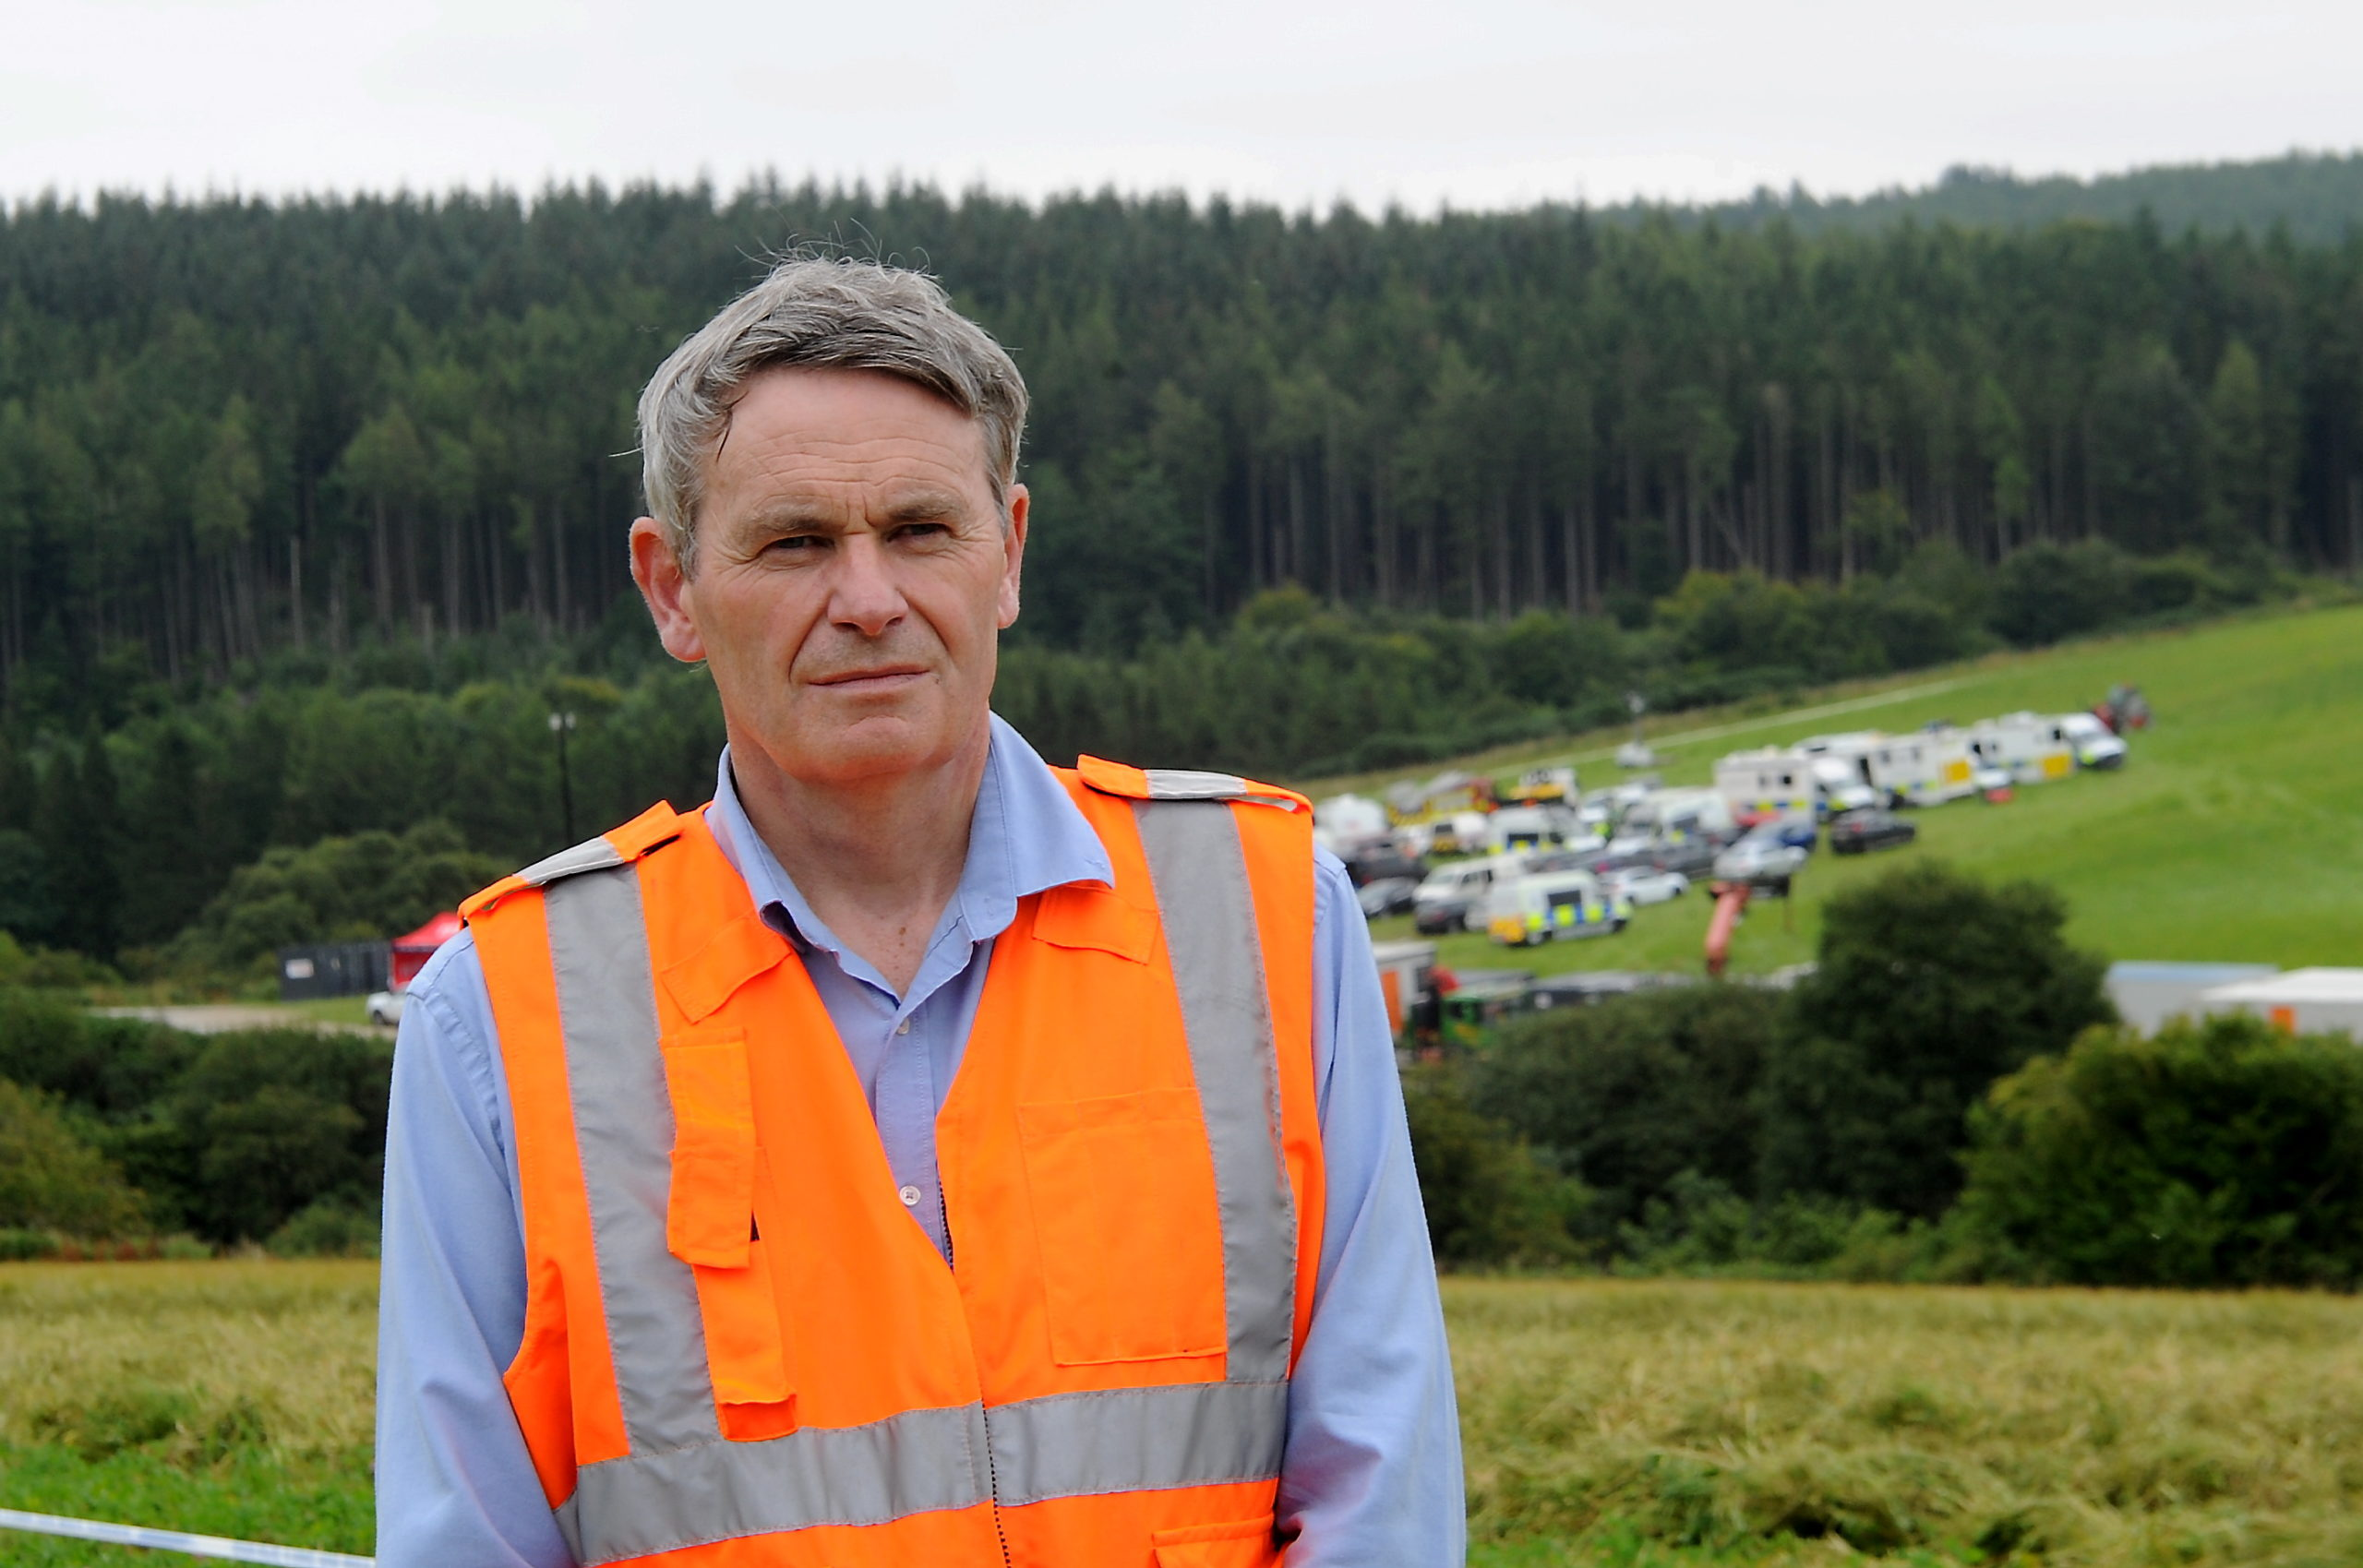 Pictured is Simon French (Chief Inspector of Rail Accidents at Rail Accident Investigation Branch) at the scene of Wednesday's fatal railway derailment near Stonehaven. Picture by DARRELL BENNS Pictured on 14/08/2020